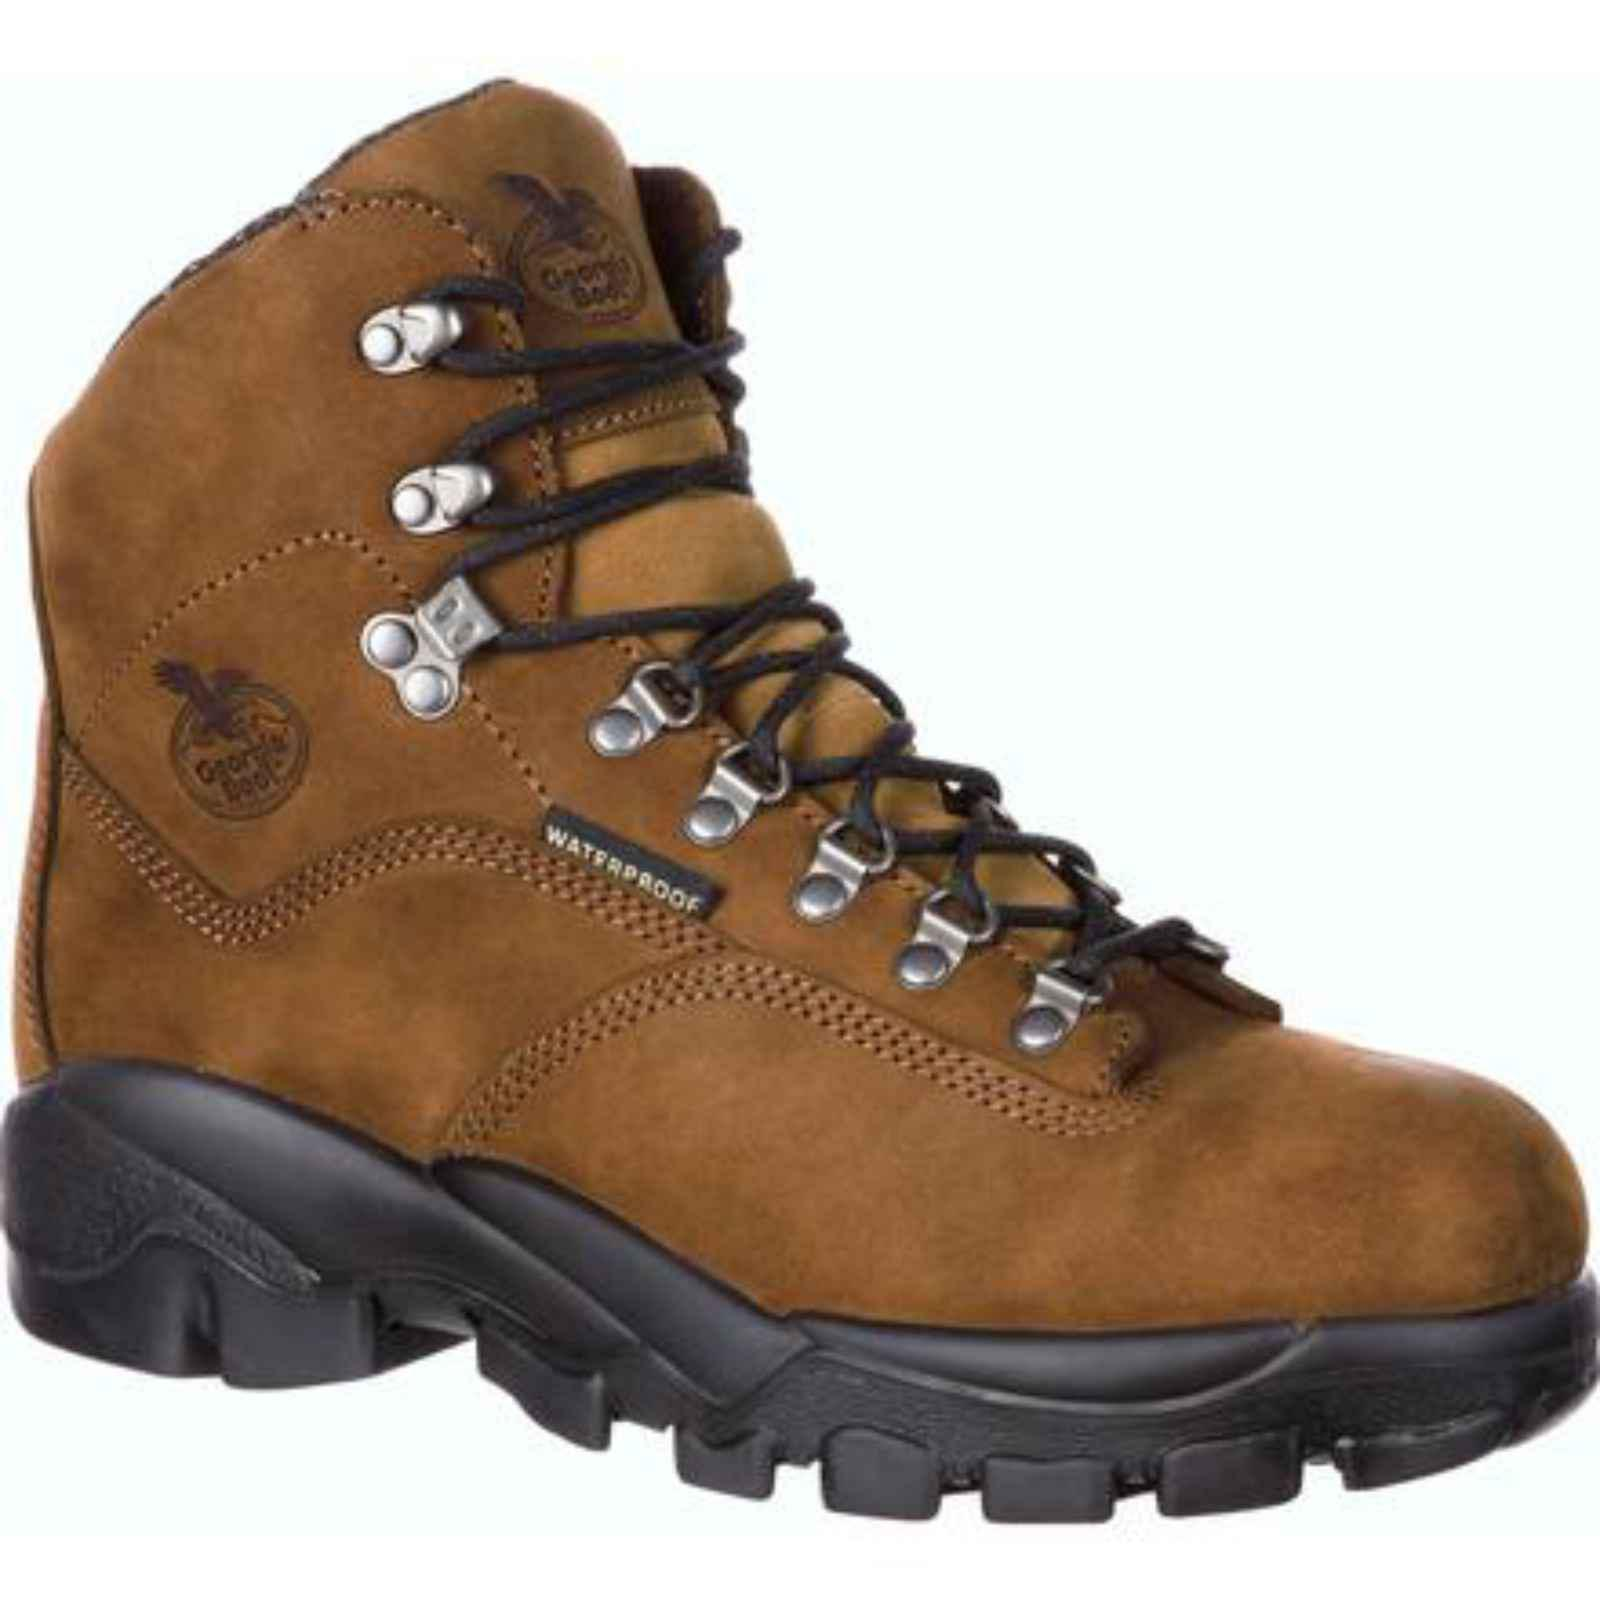 Men's Georgia Boot GB00125 Suspension System Steel Toe WP Work Boot by GEORGIA